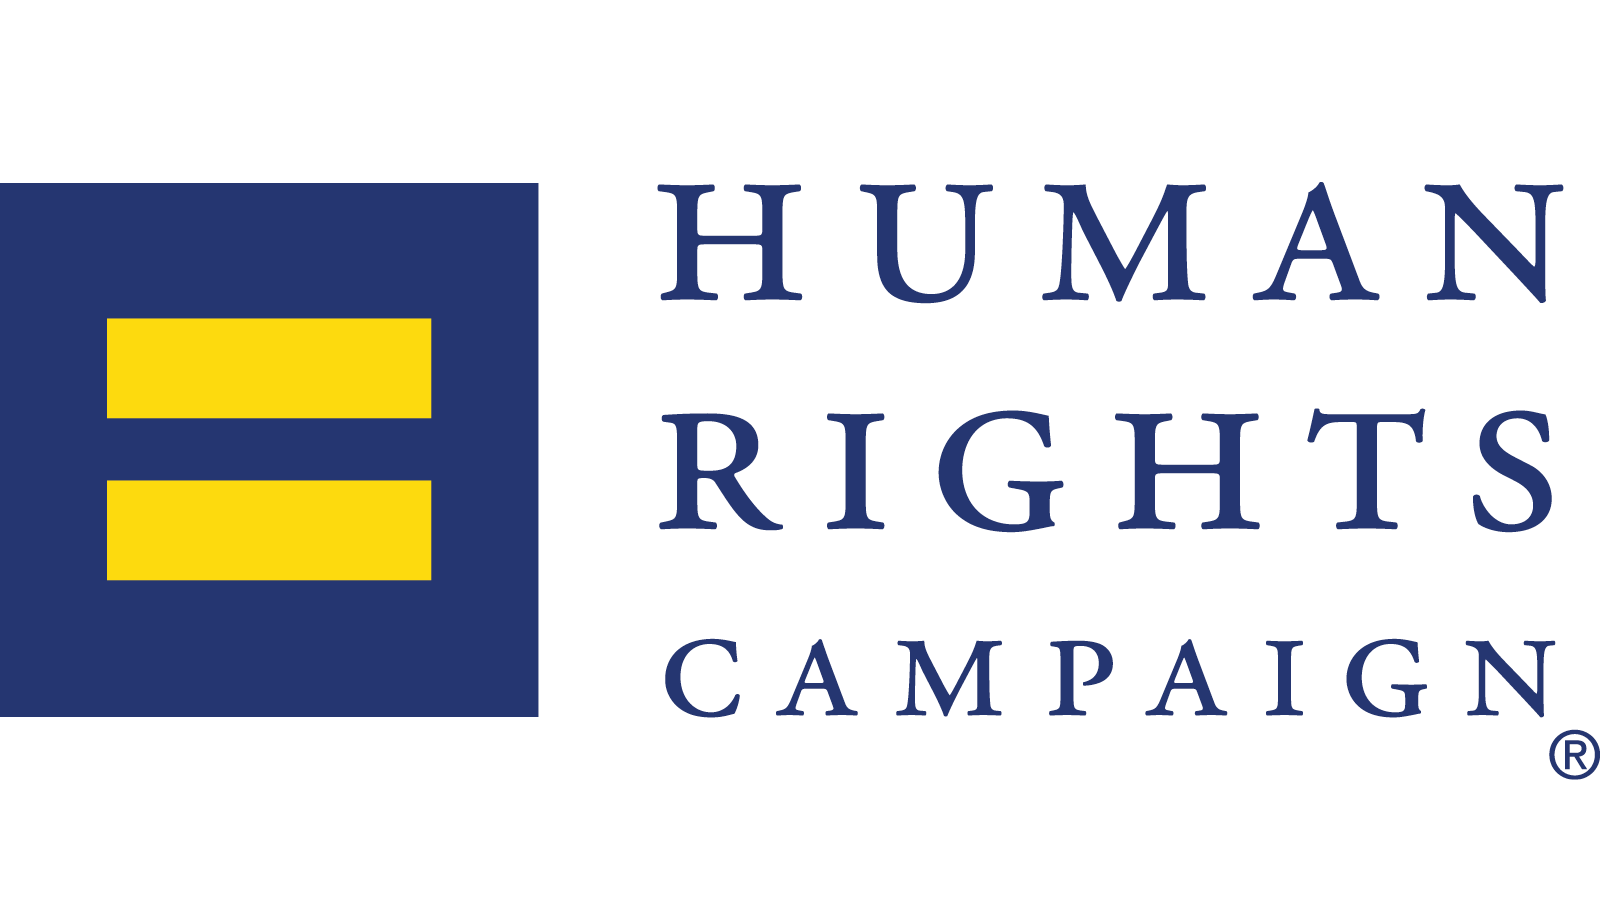 The Human Rights Campaign is America's largest civil rights organization fighting every day for a world where #LGBTQ people are treated #EqualEverywhere.